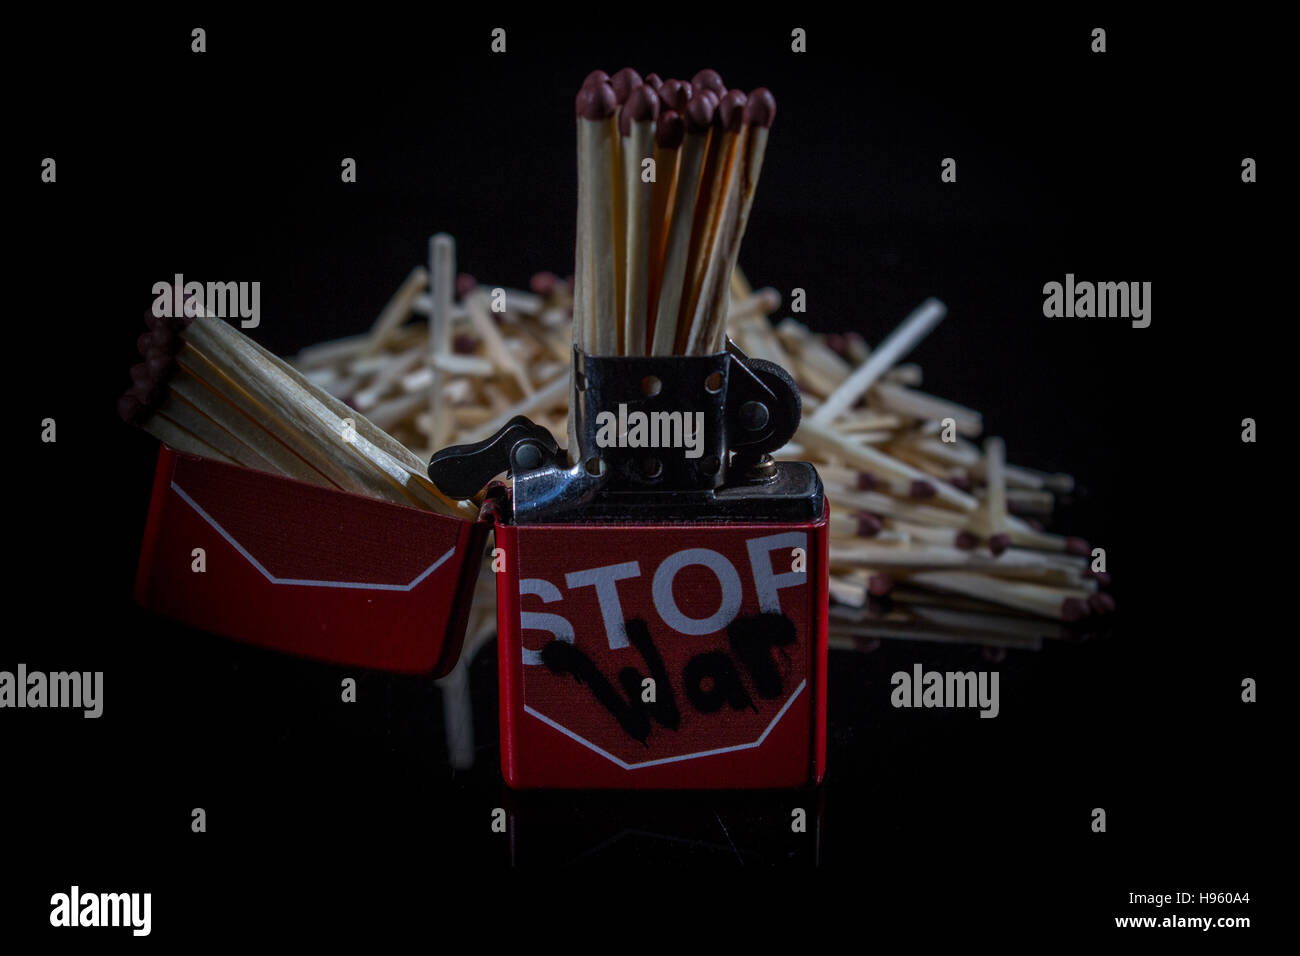 'Stop War' Zippo Lighter with Matches - Stock Image